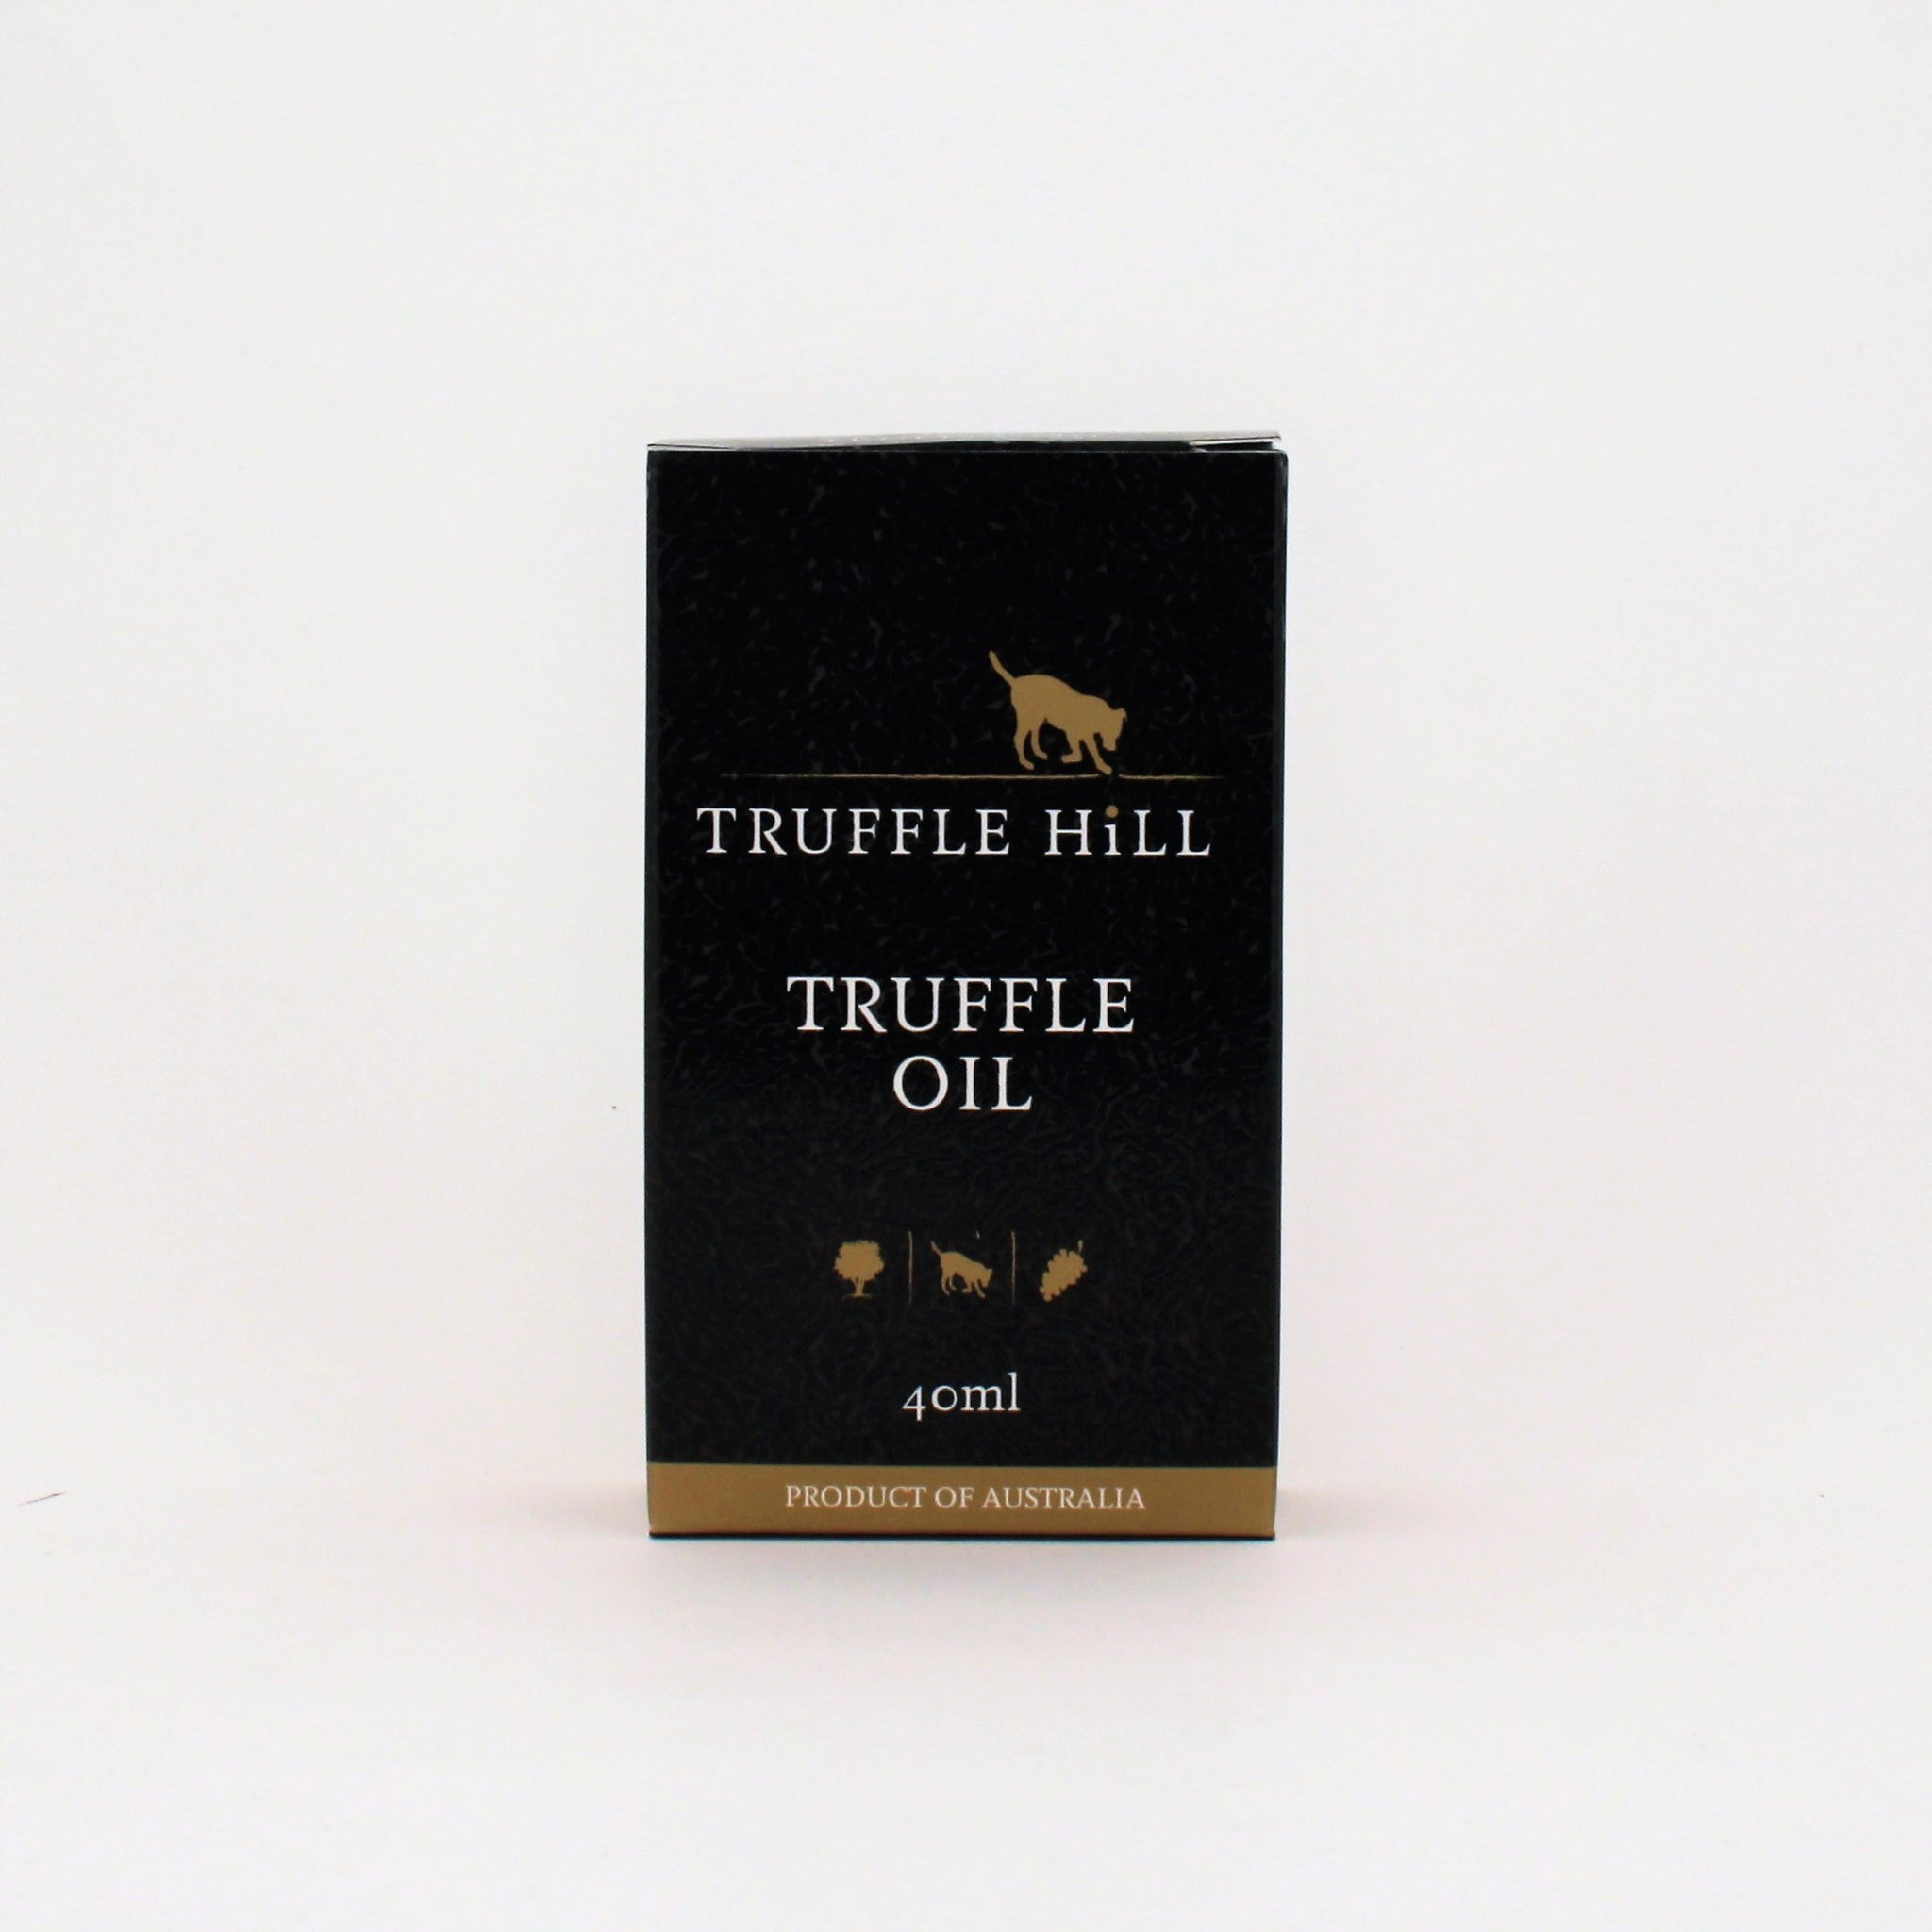 Truffle Hill Truffle Oil 40ml